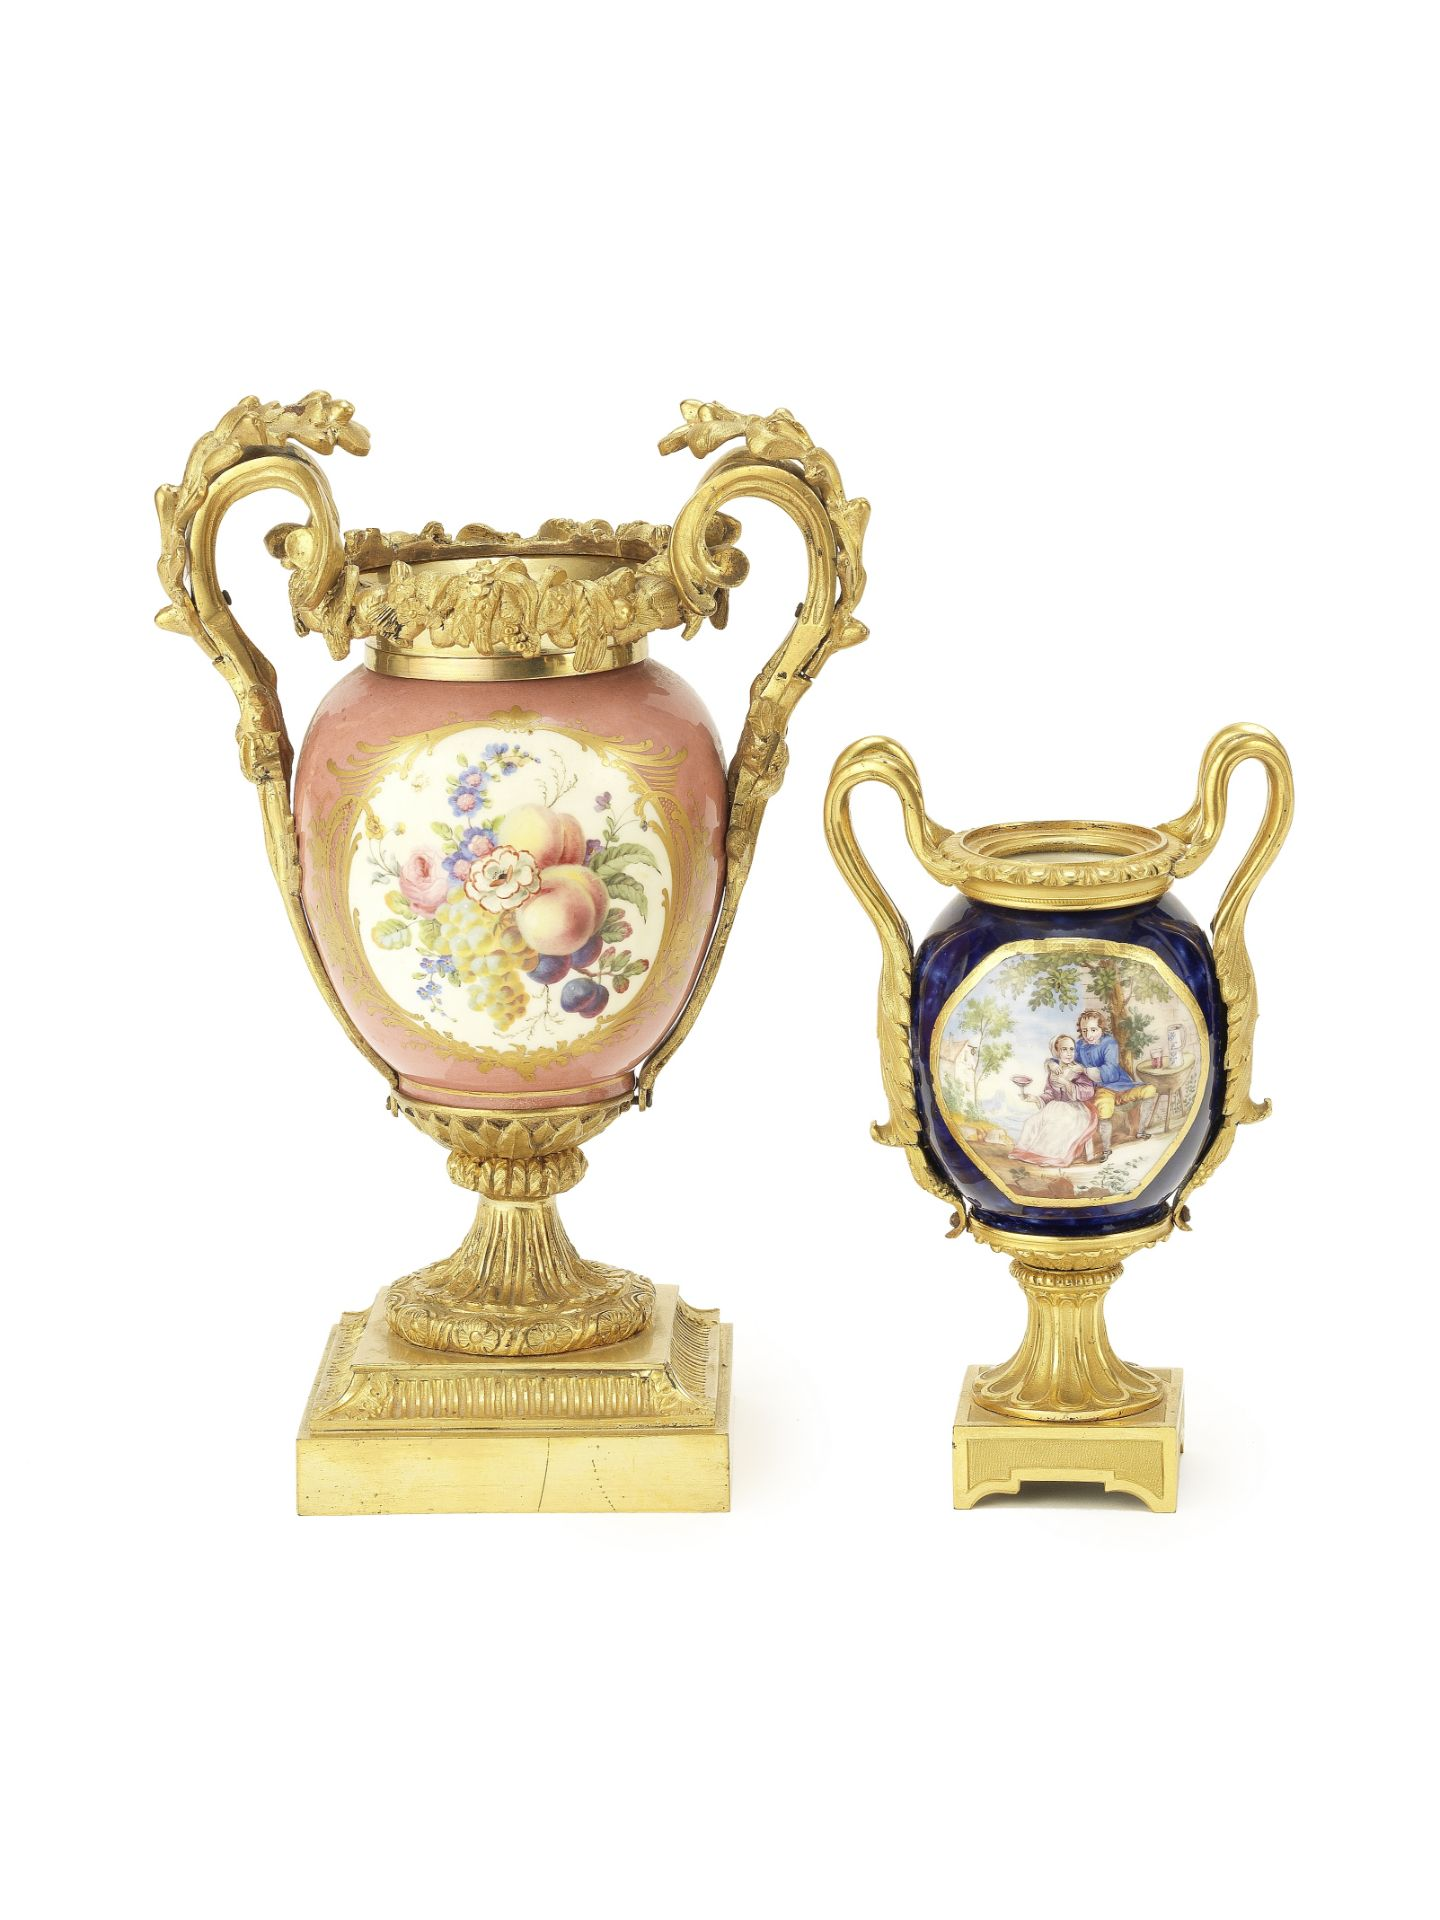 Los 137 - Two late 19th century French gilt bronze mounted Sevres style porcelain urns (2)